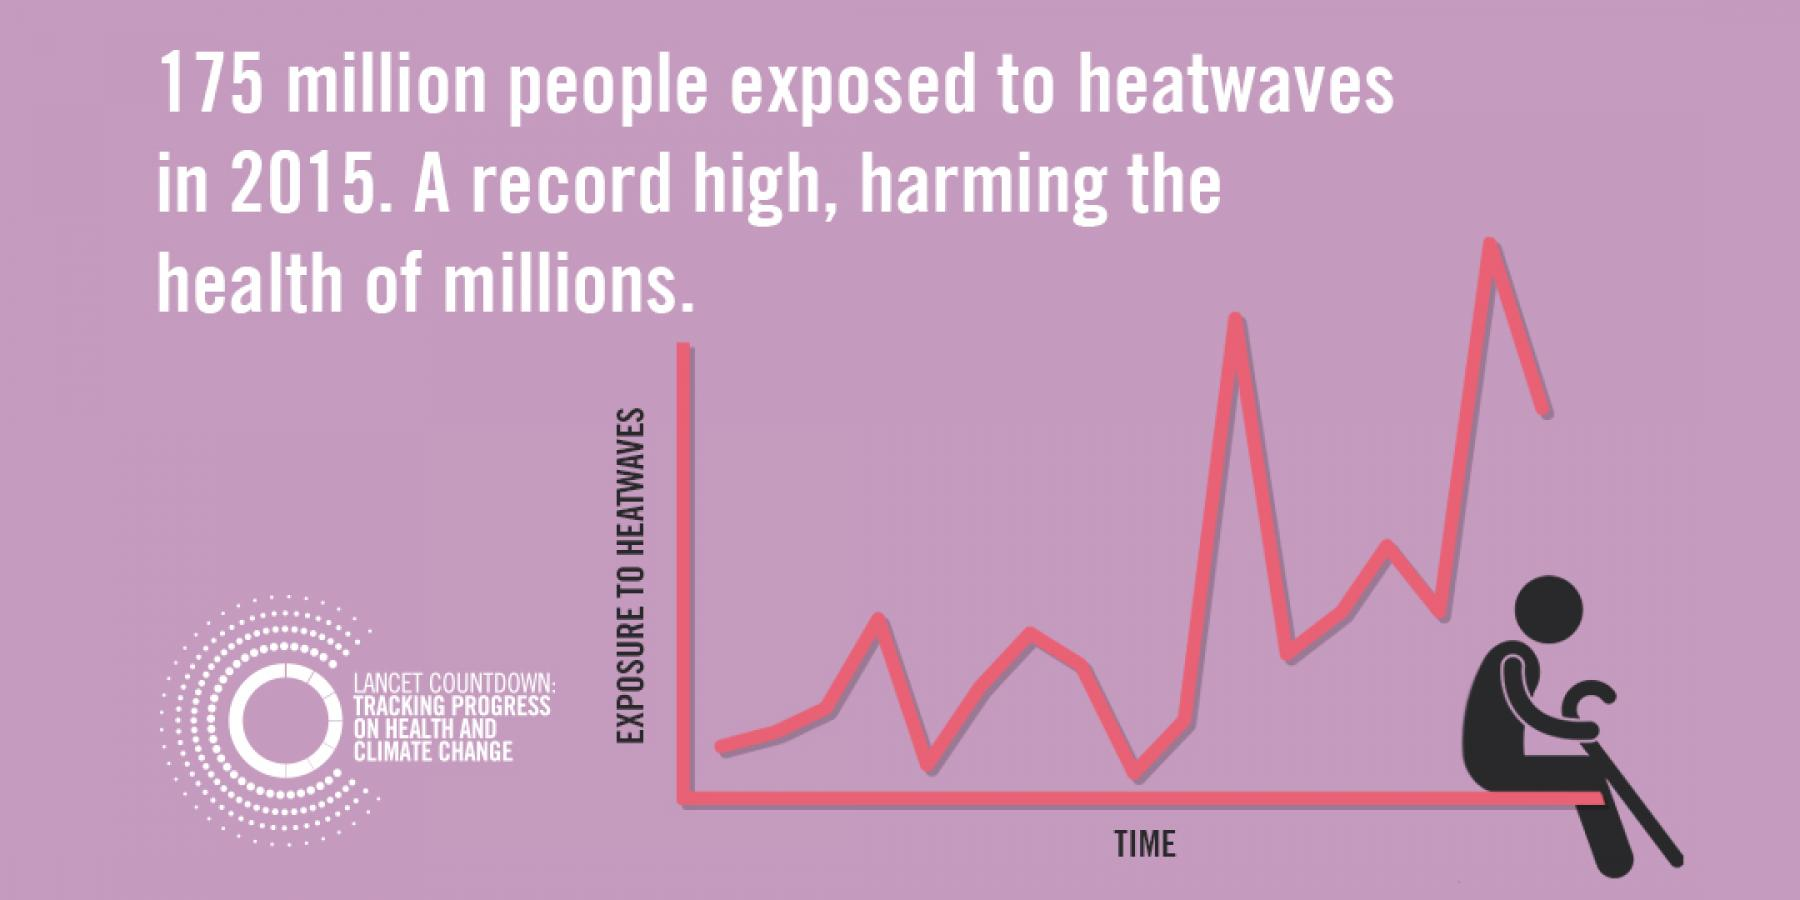 Lancet Countdown graphic: climate change leading to more heatwaves, affecting global health